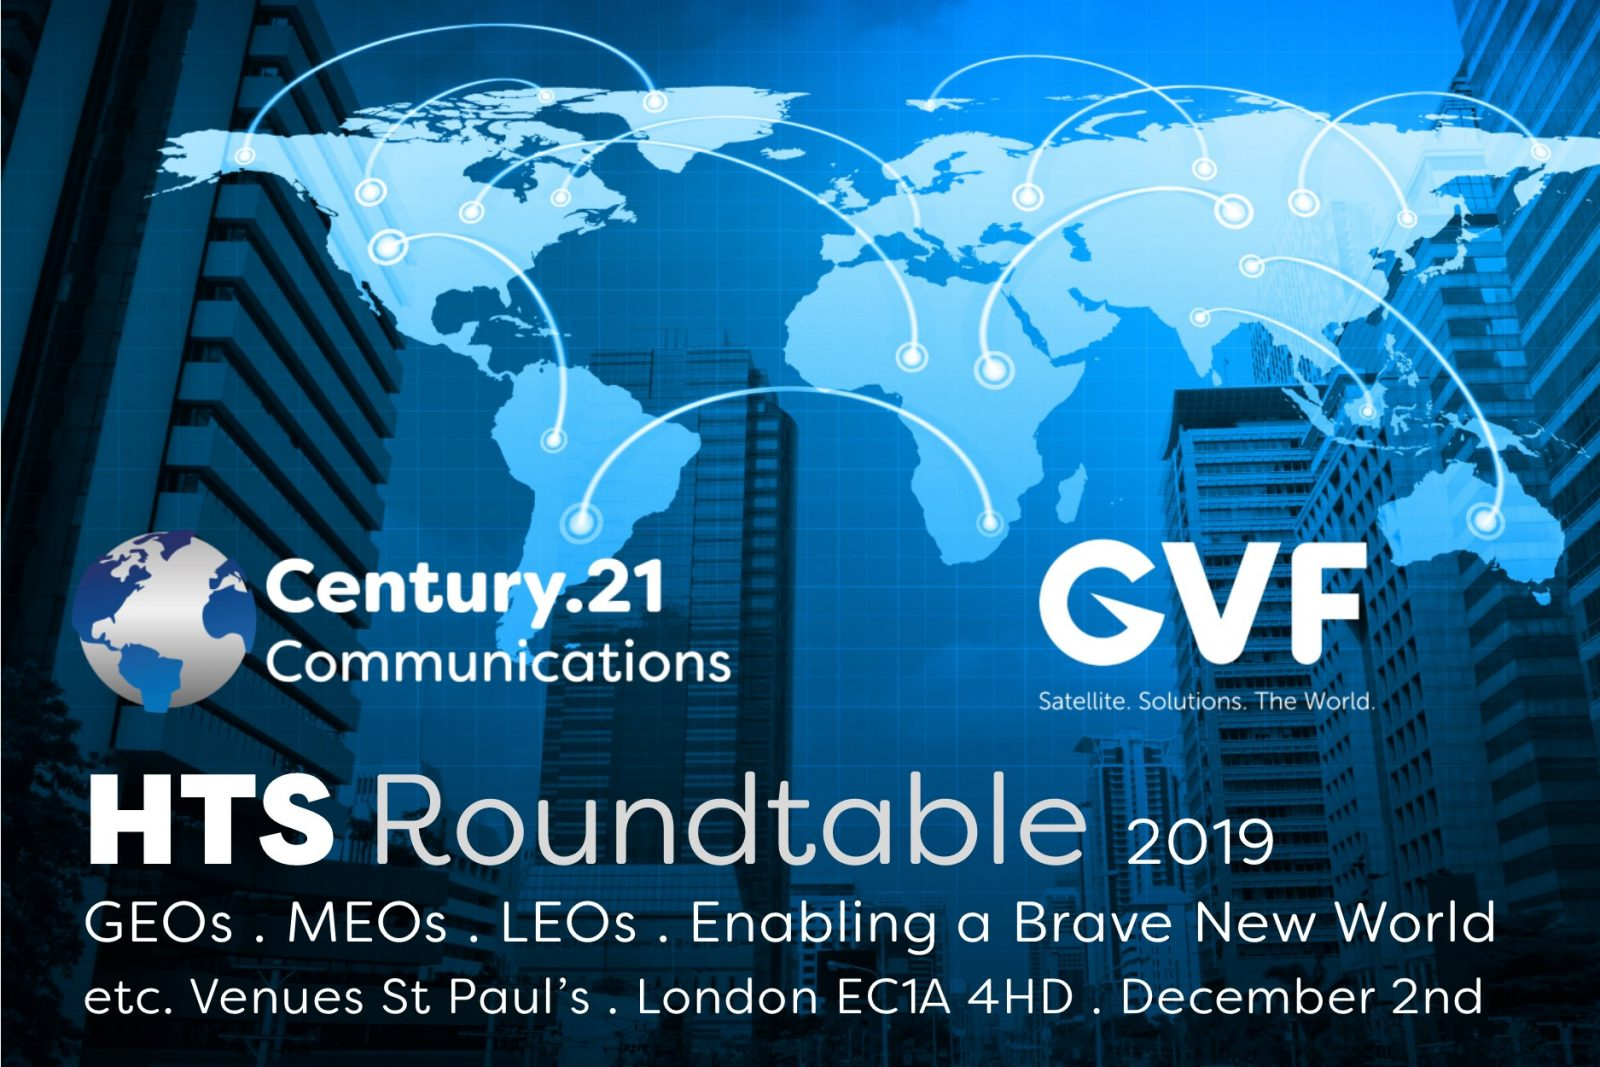 HTS Roundtable 2019